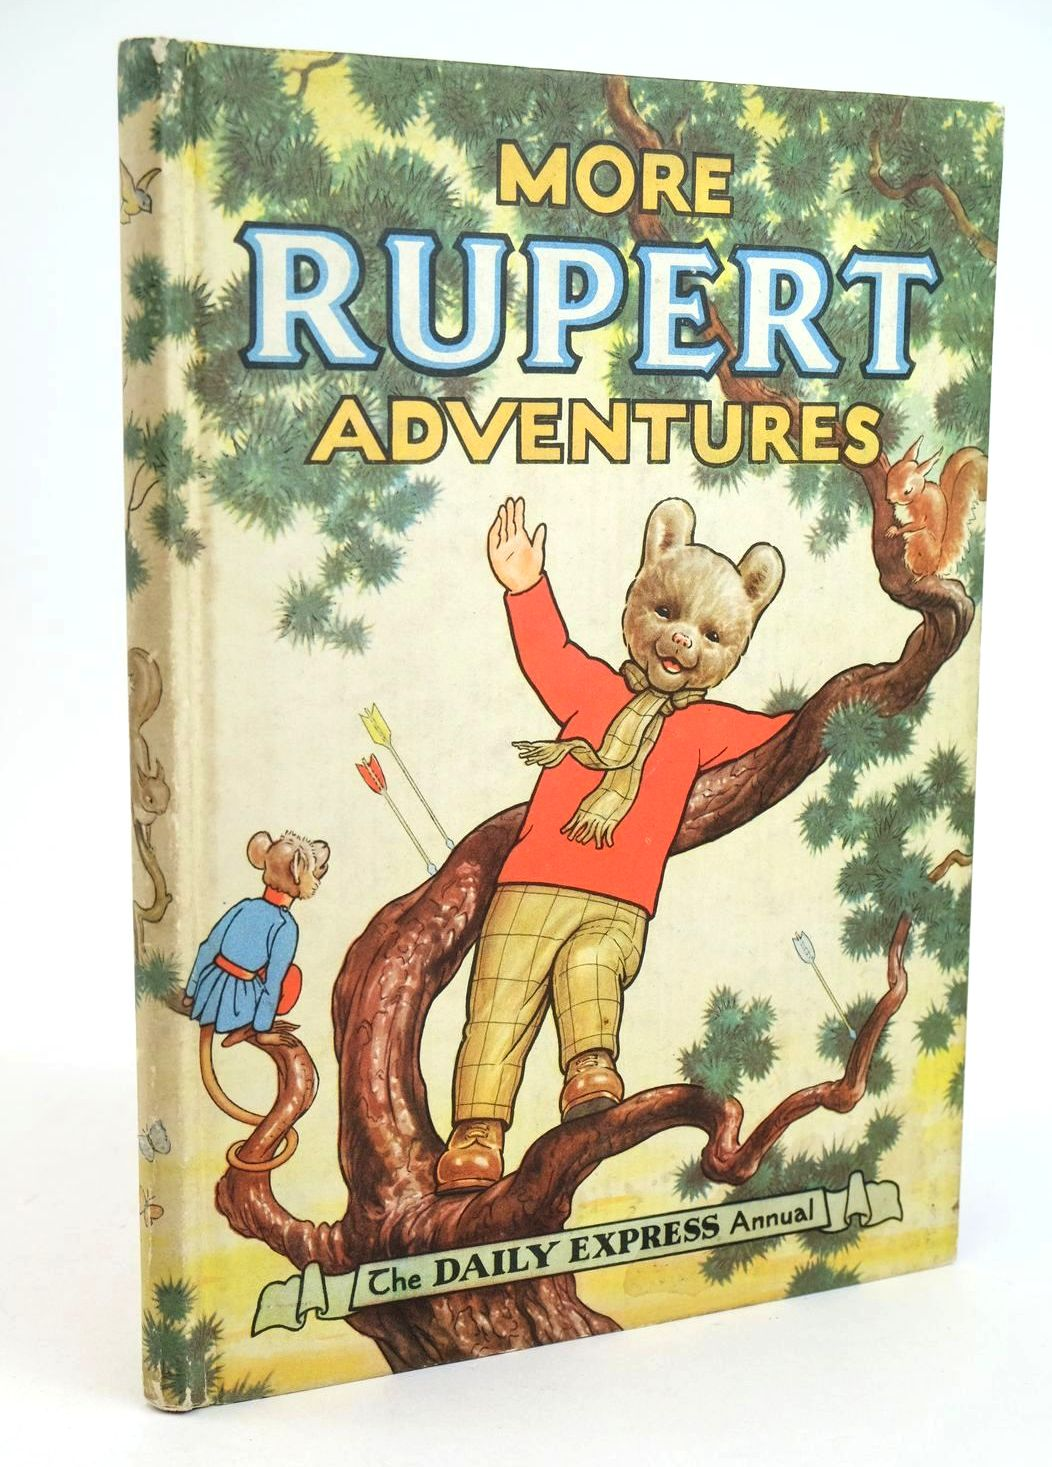 Photo of RUPERT ANNUAL 1952 - MORE RUPERT ADVENTURES- Stock Number: 1319026